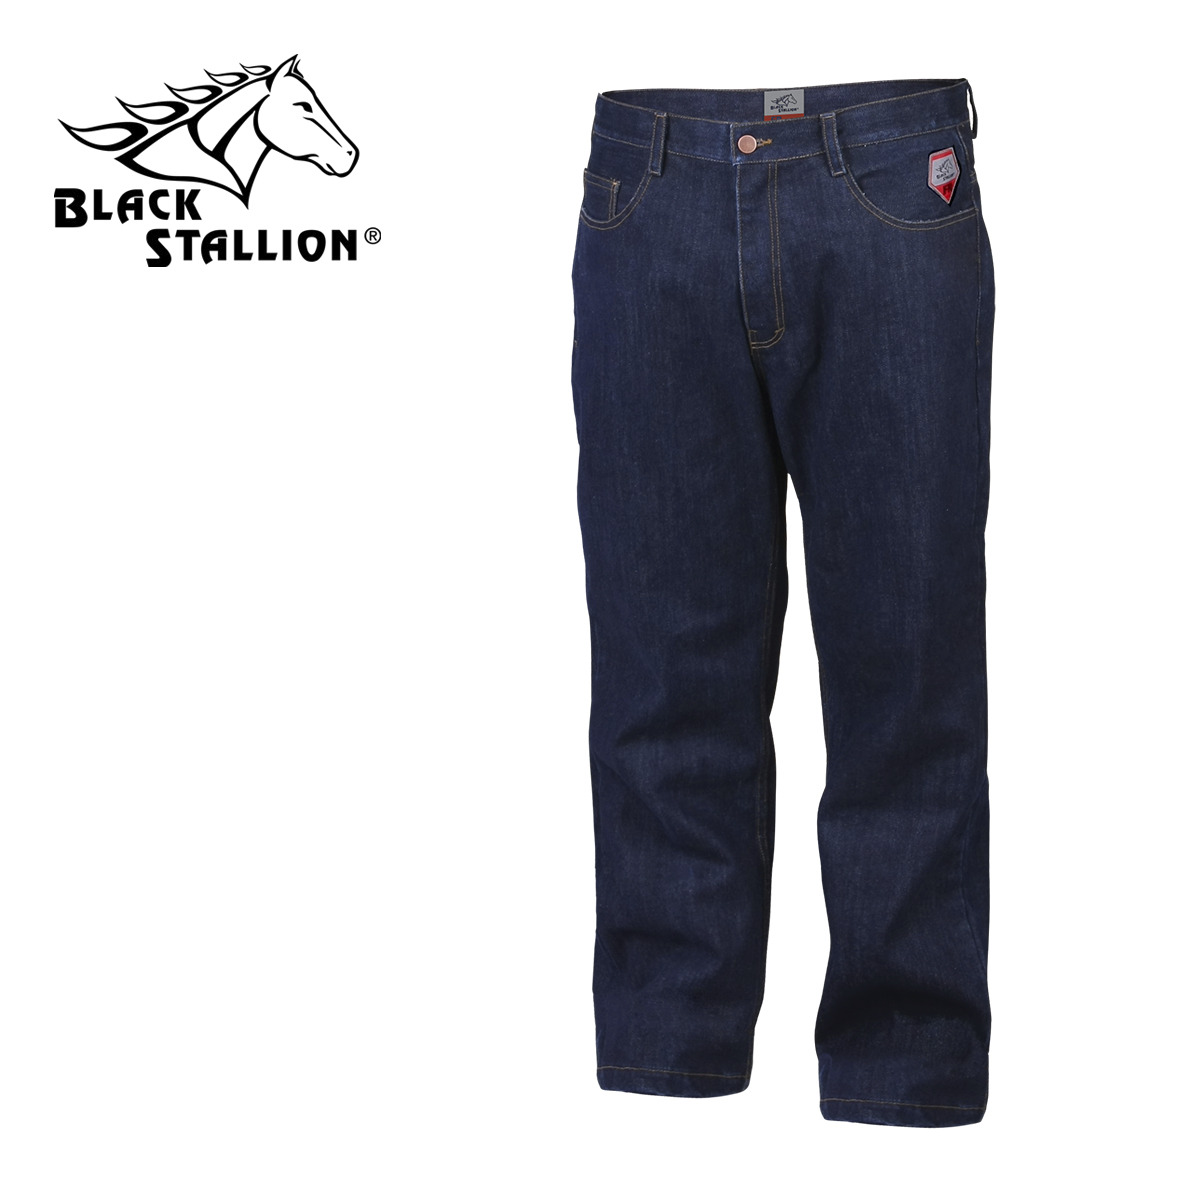 Black Stallion Flame resistant jeans